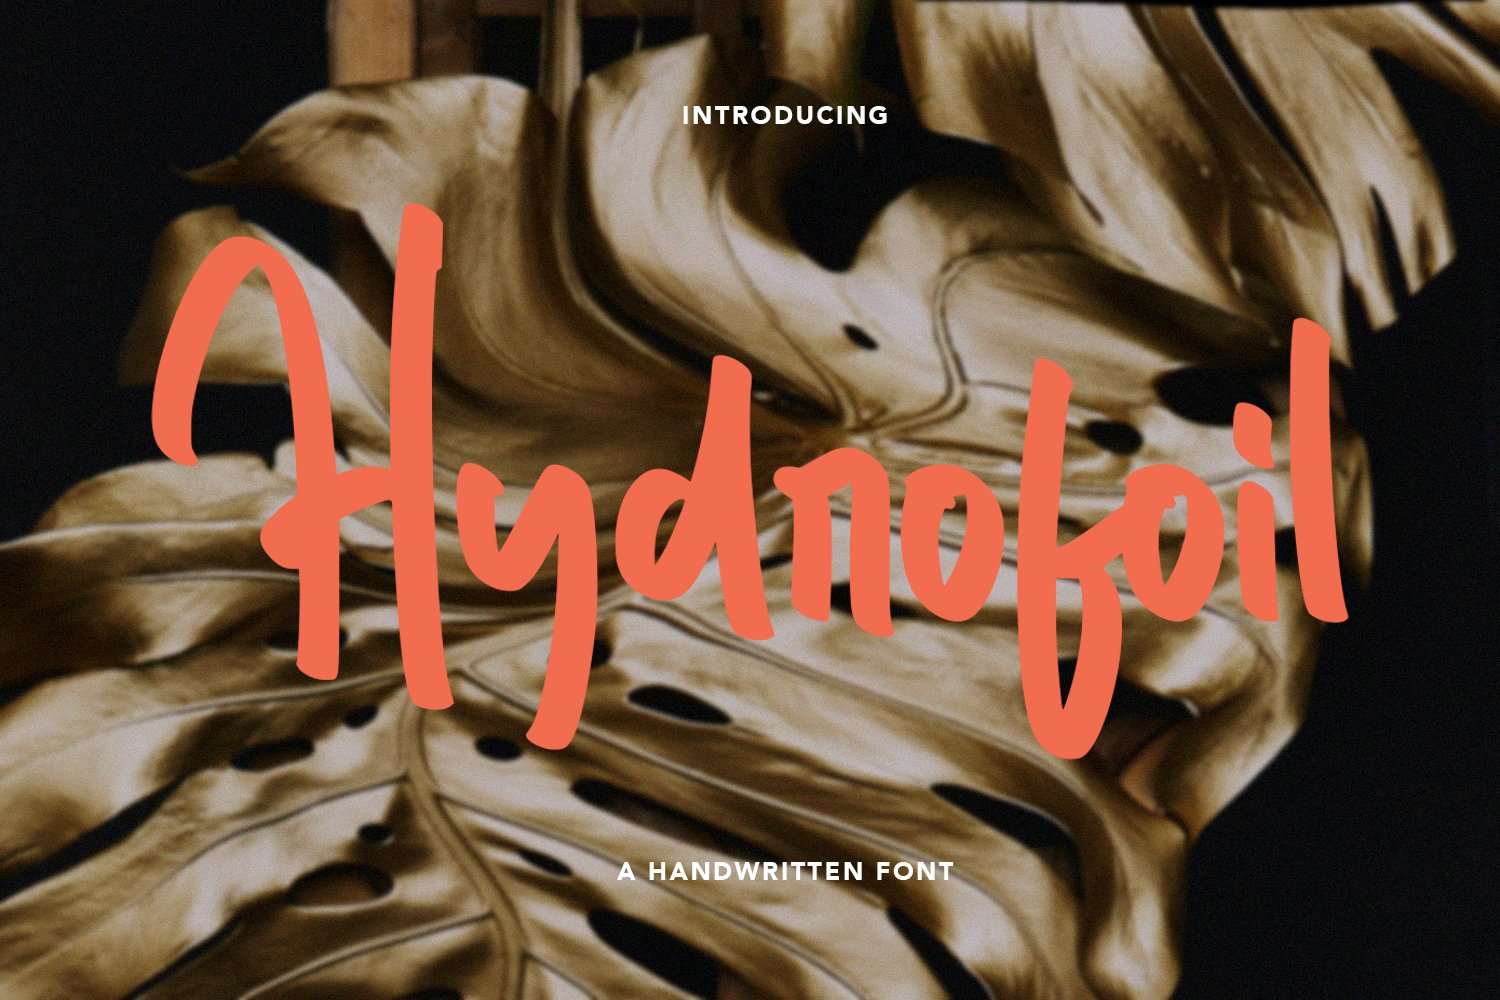 Hydrofoil - Handwritten Font example image 1